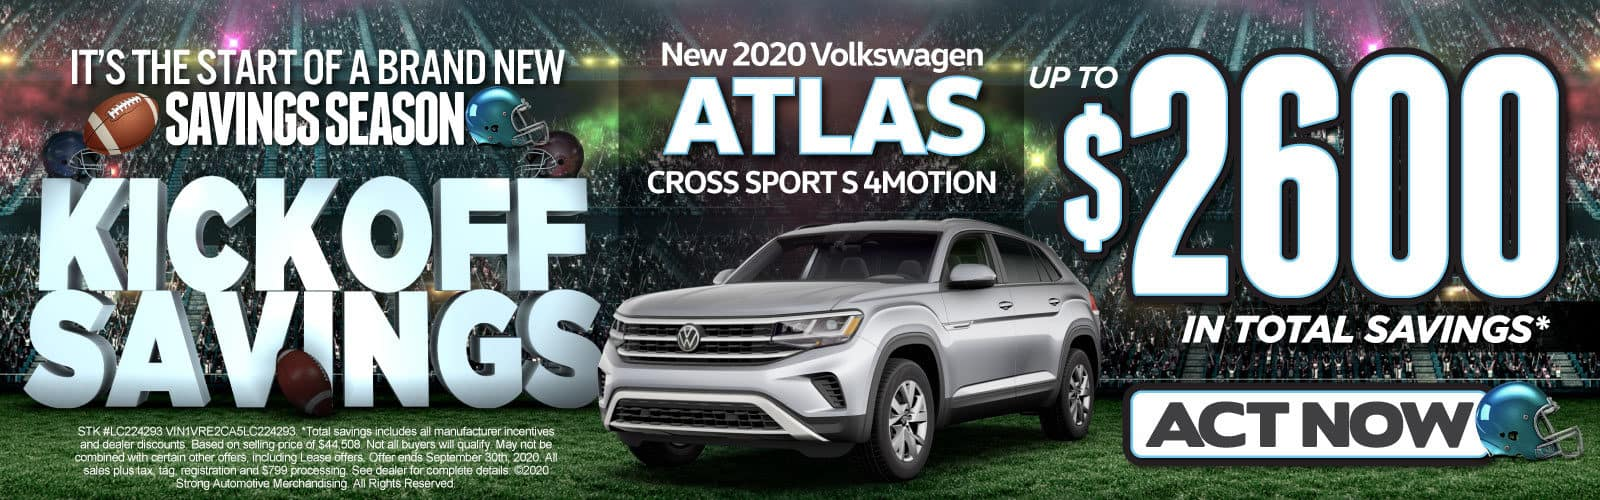 New 2020 Atlas CrossSport - Up to $2600 in total savings - Act Now